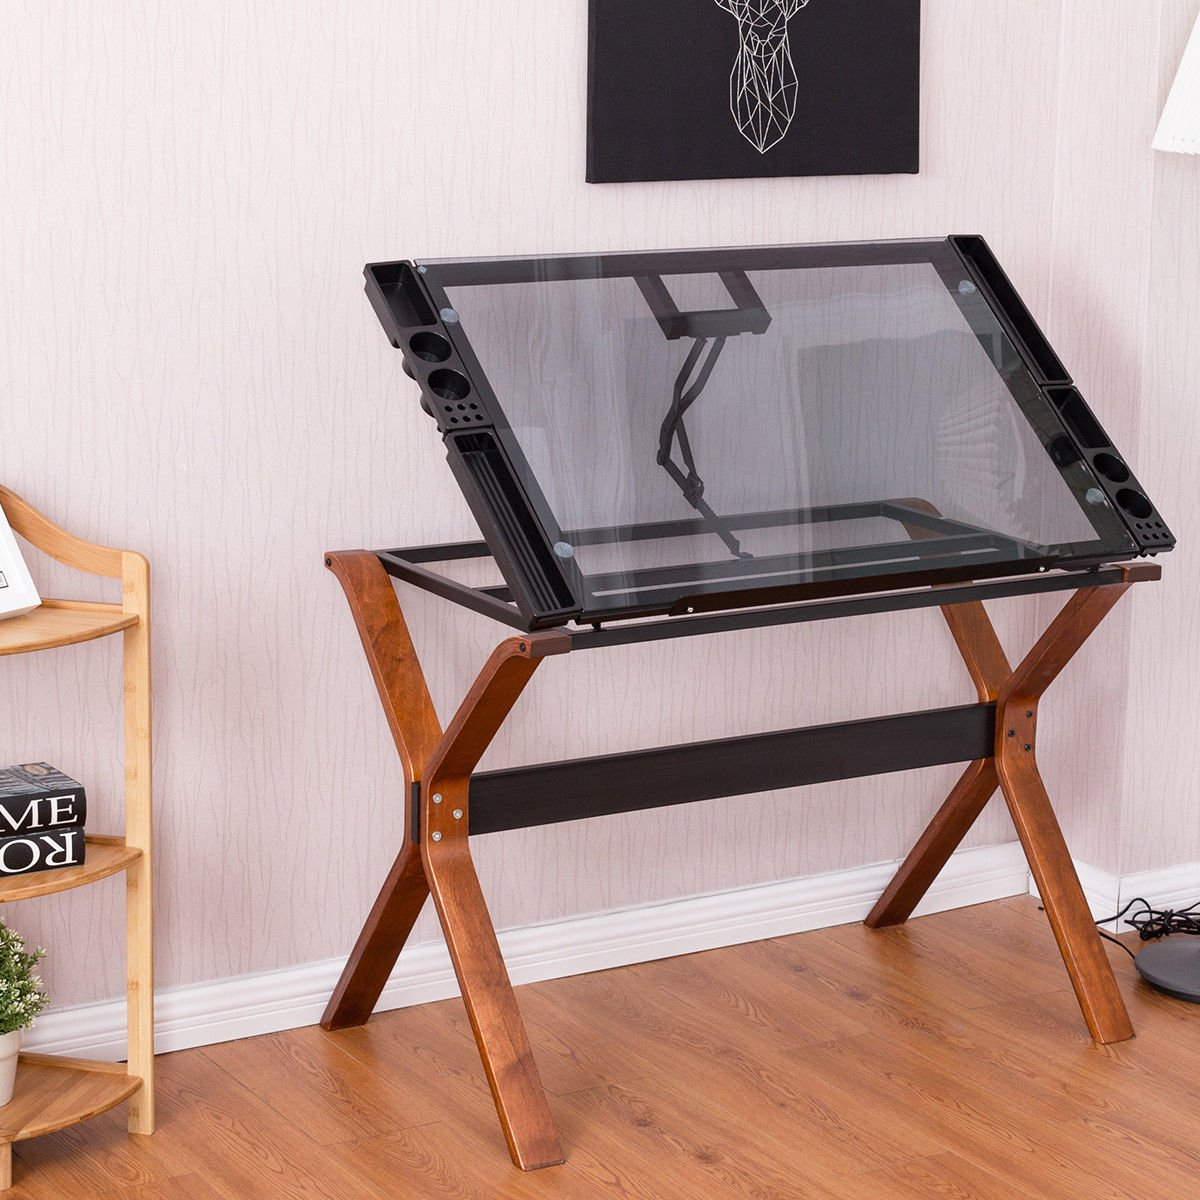 Best Rated In Drawing Tables & Boards & Helpful Customer